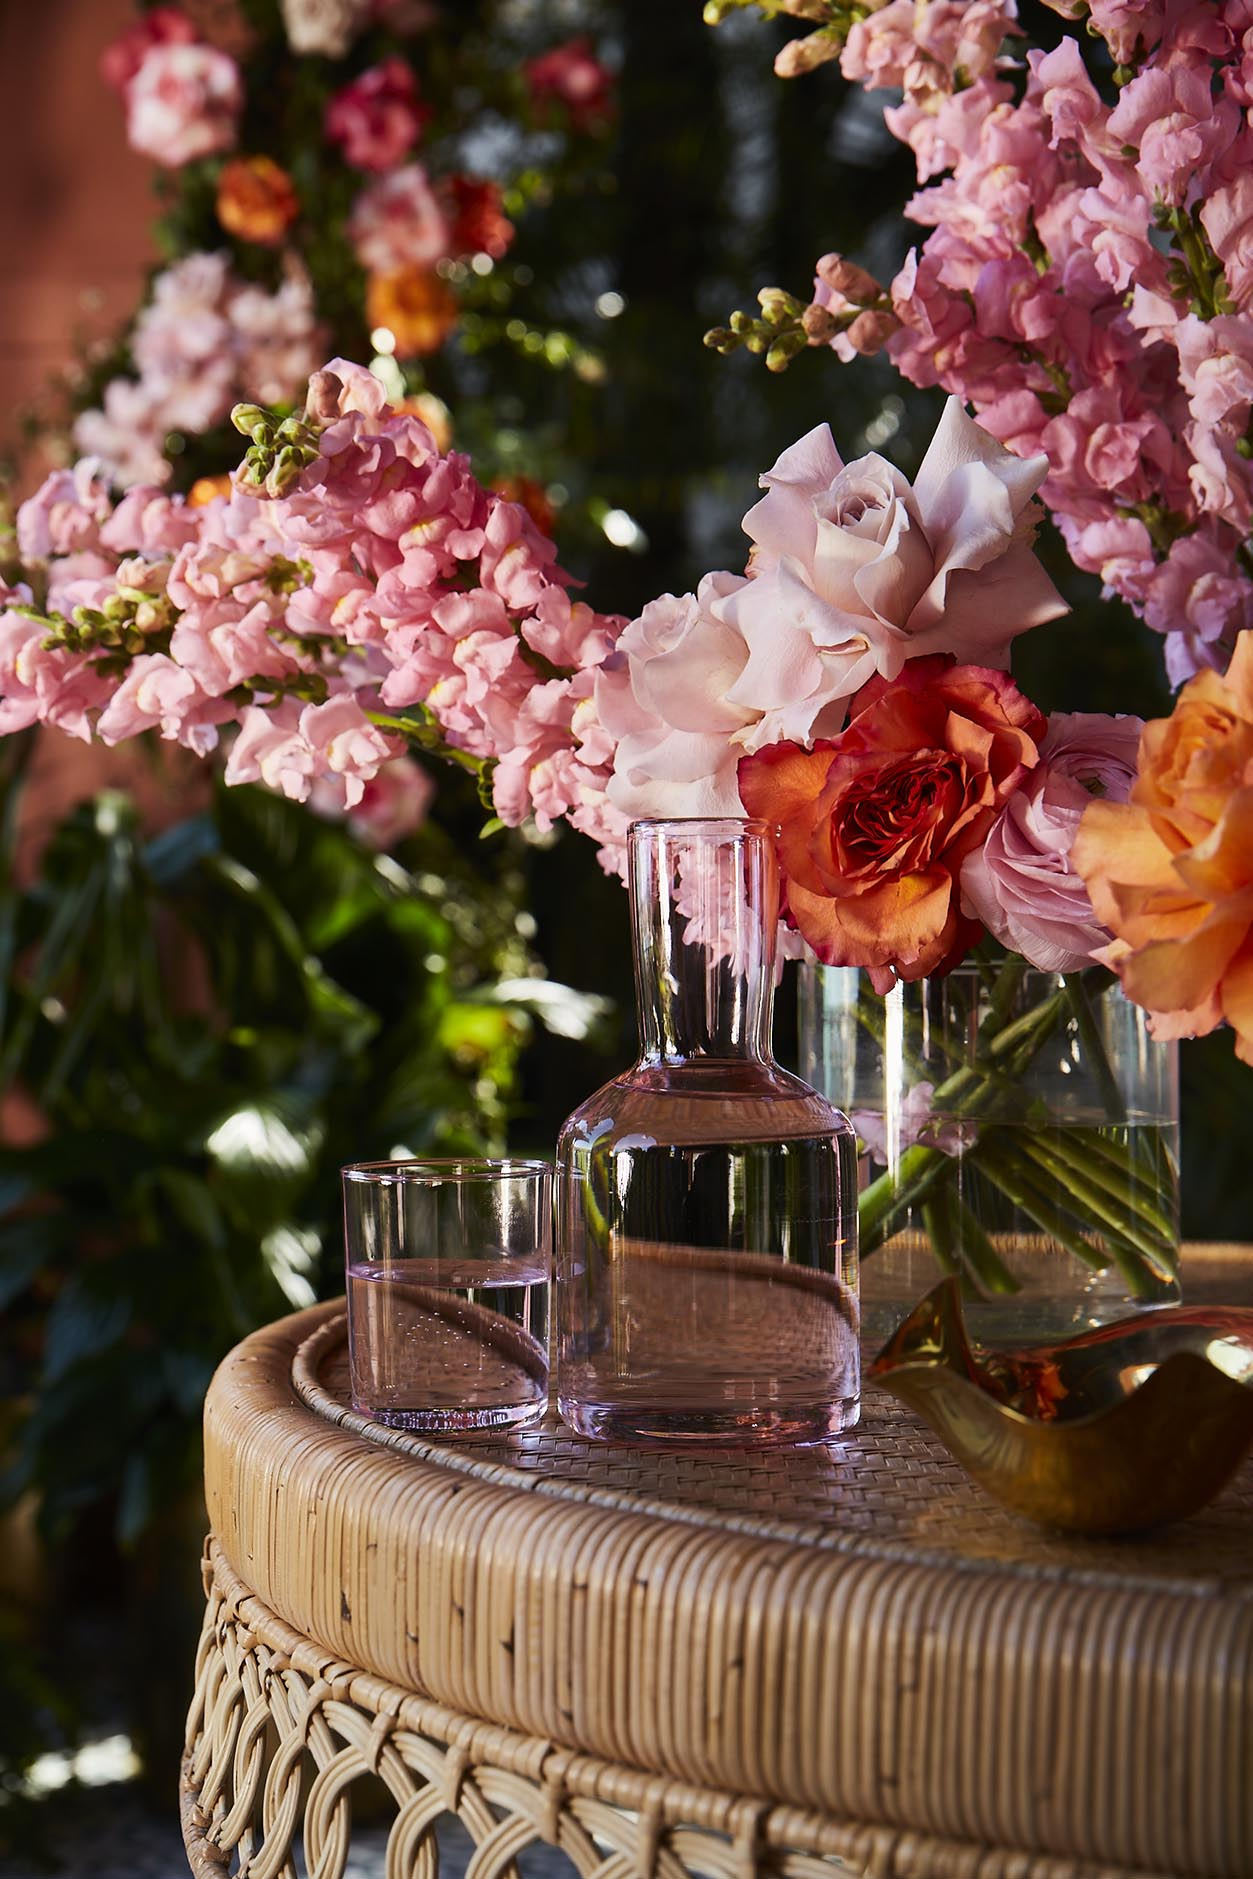 Editorial Stylist Kerrie-Ann Jones Interior Styling Sydney & Melbourne.  Summer Table Setting with Floral Table Centrepiece.  Floral table setting.  Table Styling Ideas, Mediterranean Table Setting #tablestylingideas #tableinspiration #floralcentrepiece